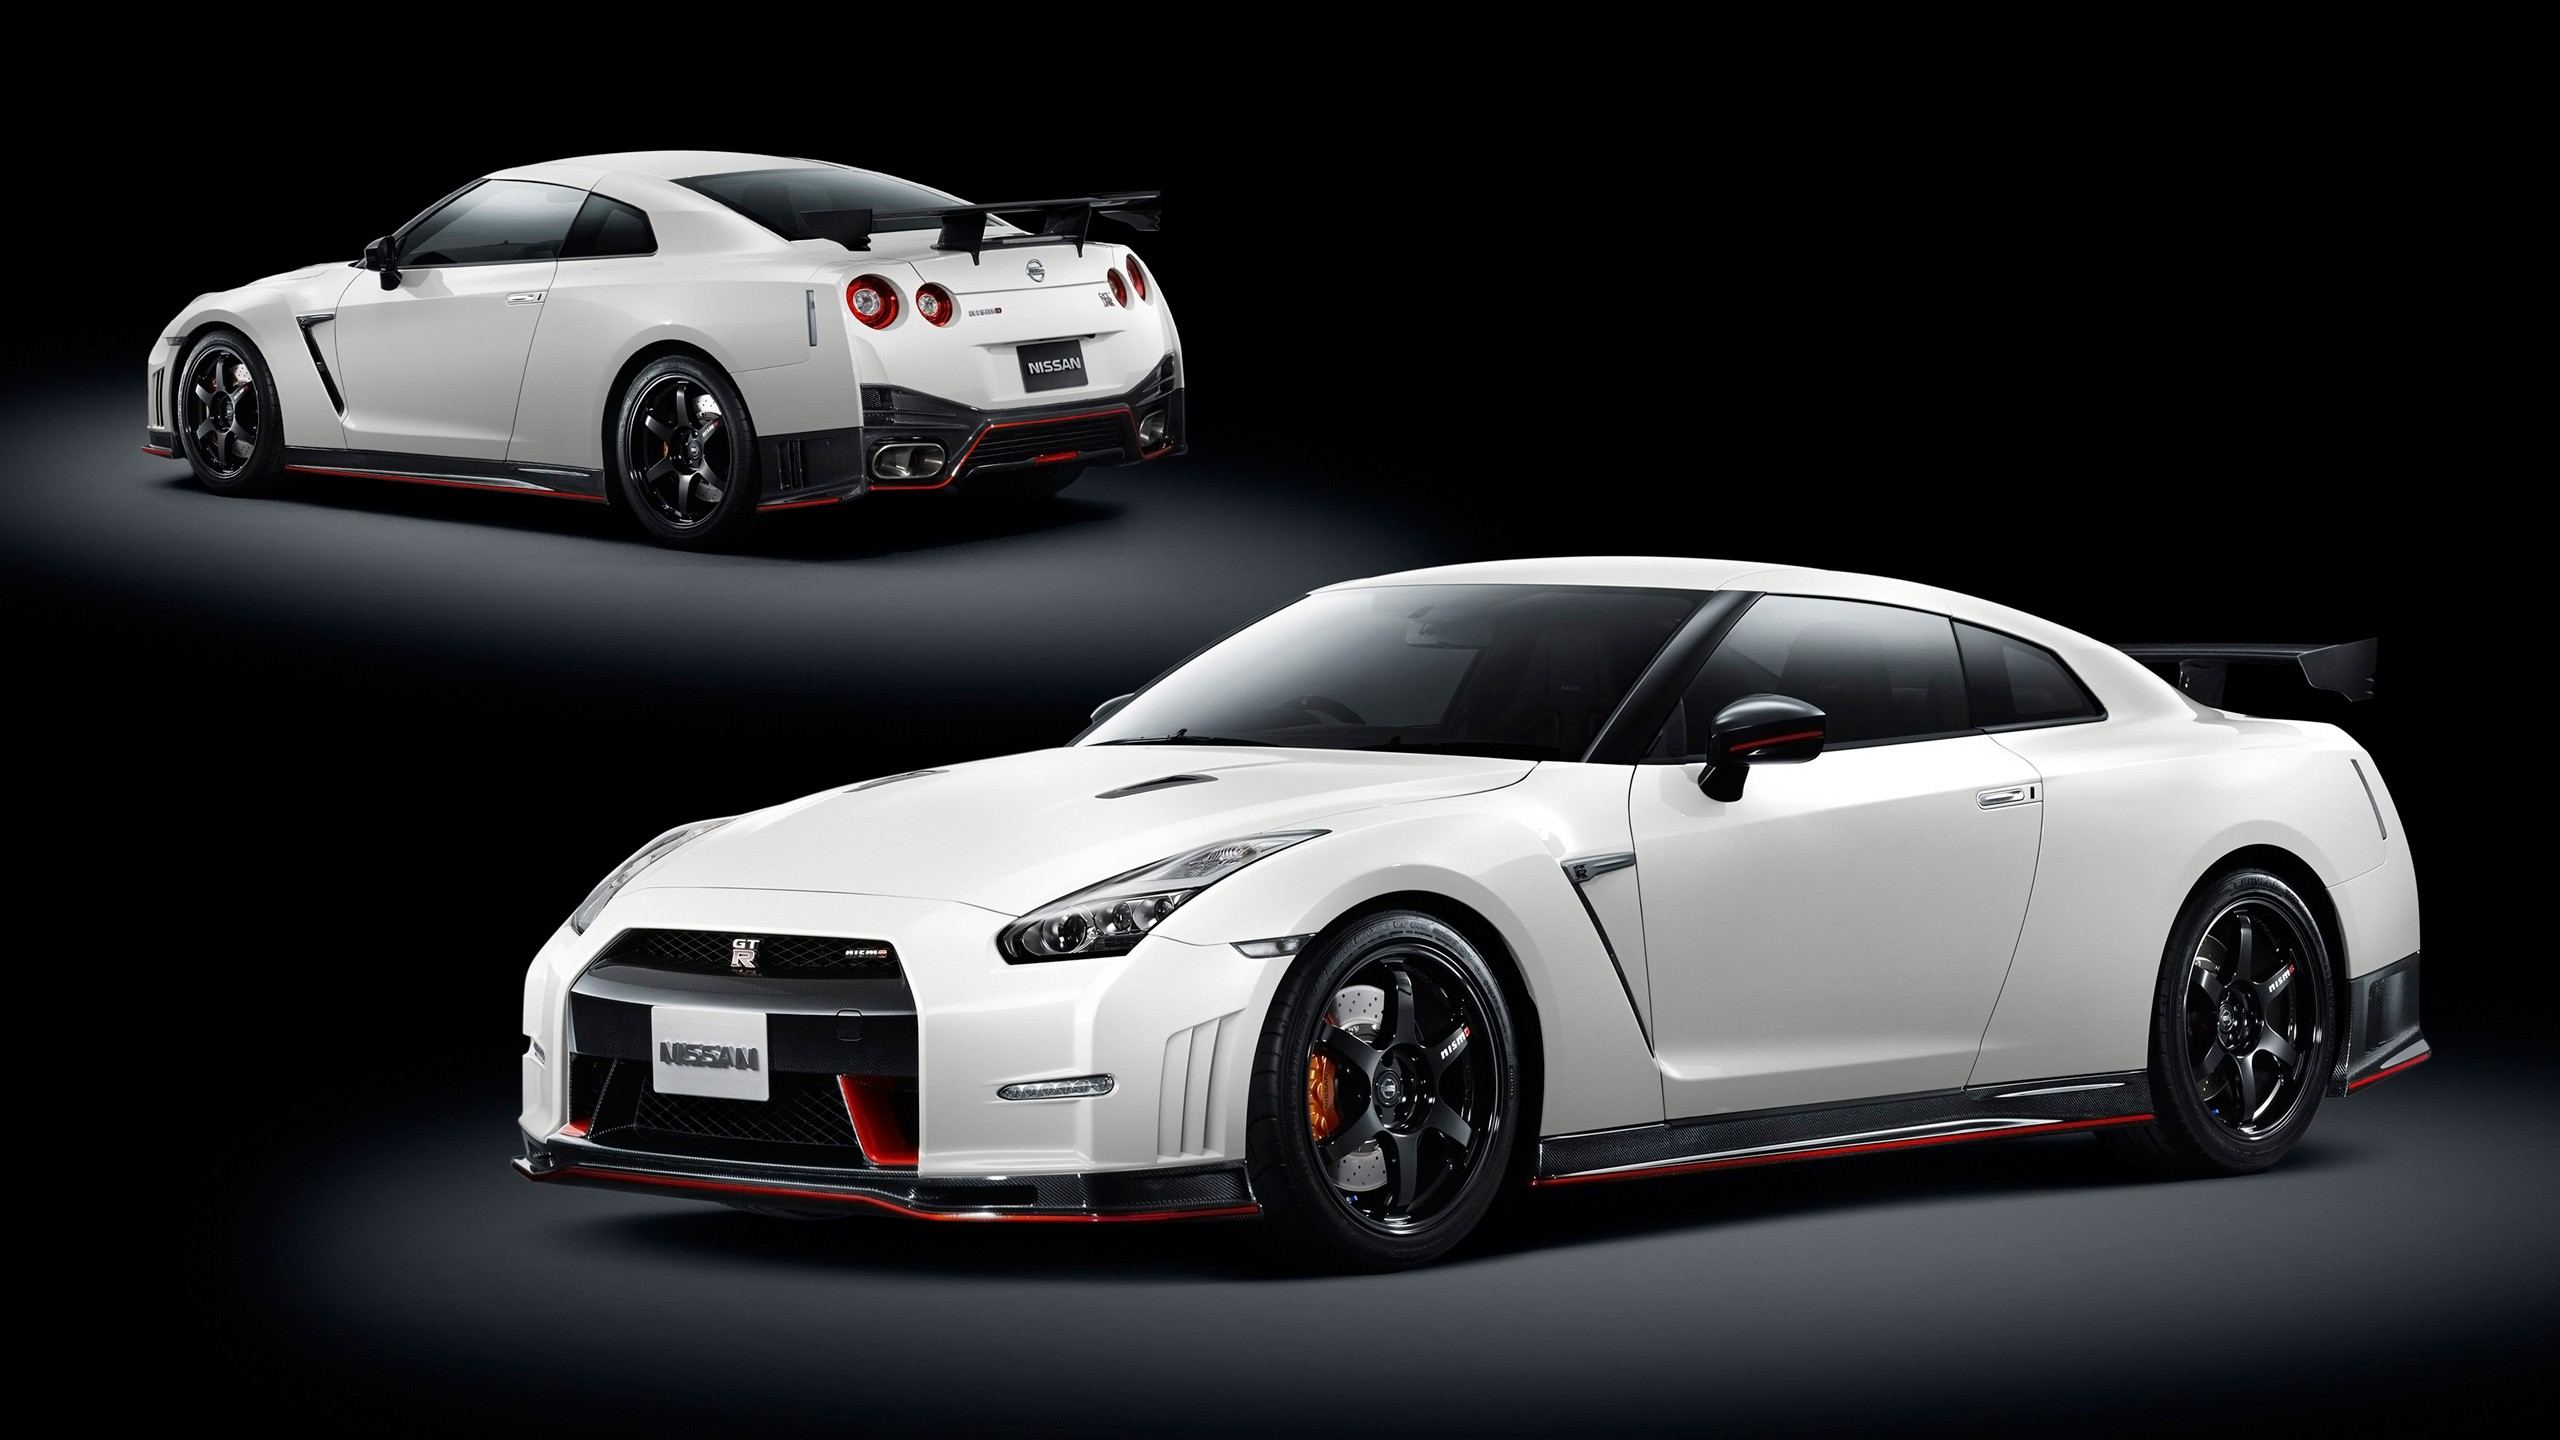 2015 Nissan GT R NISMO Wallpaper HD Car Wallpapers ID